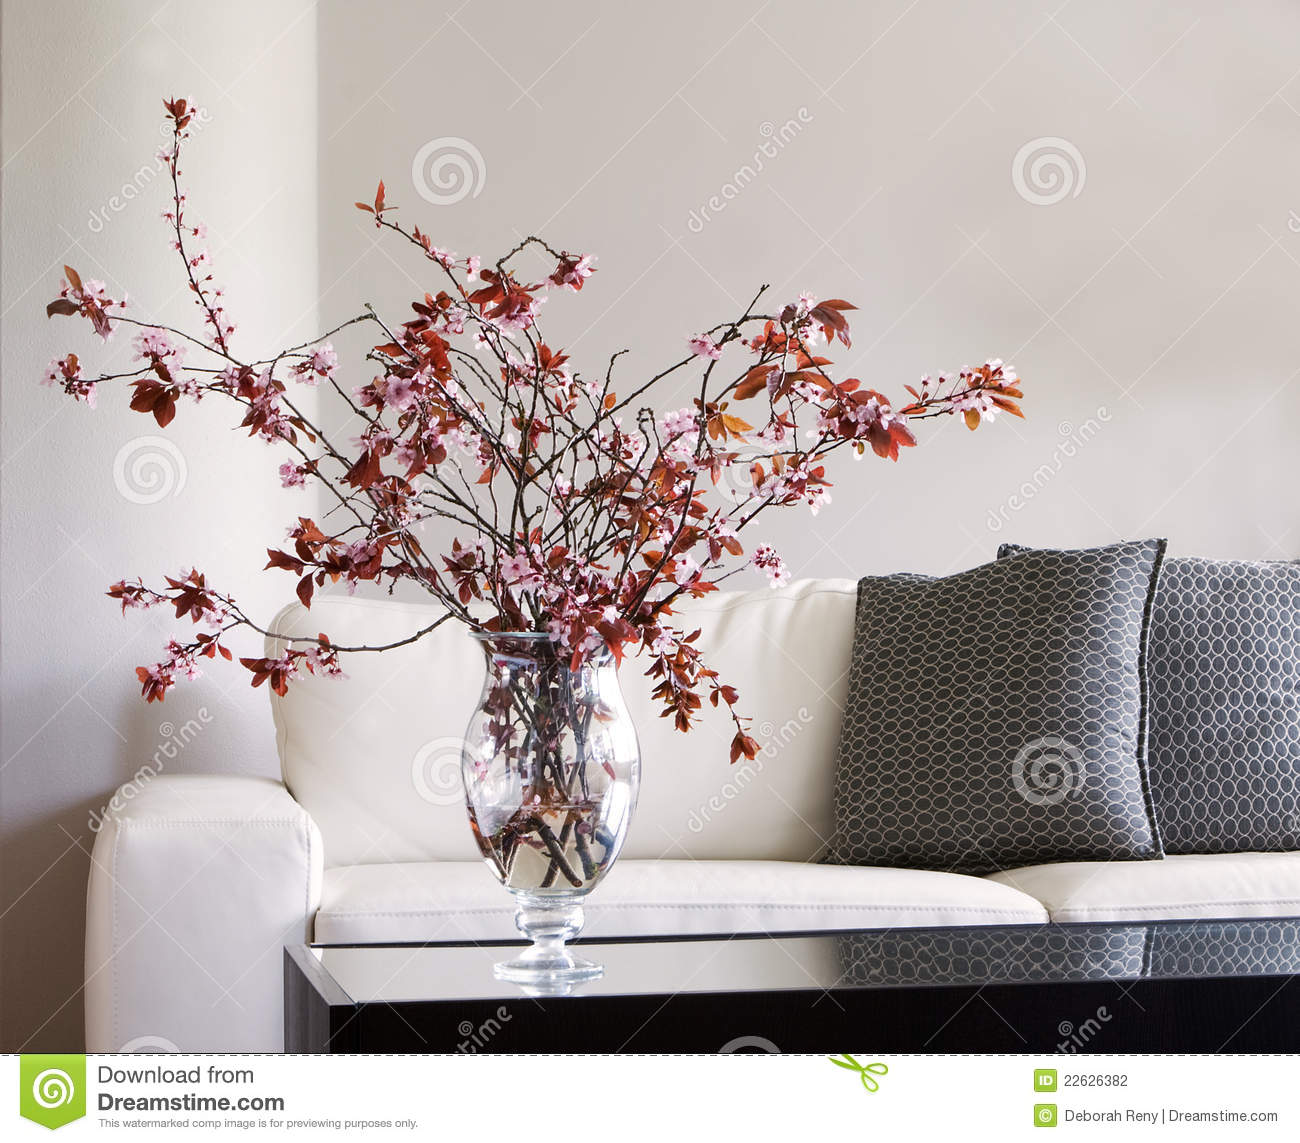 Vase Of Blossoms On Table In Modern Living Room Stock